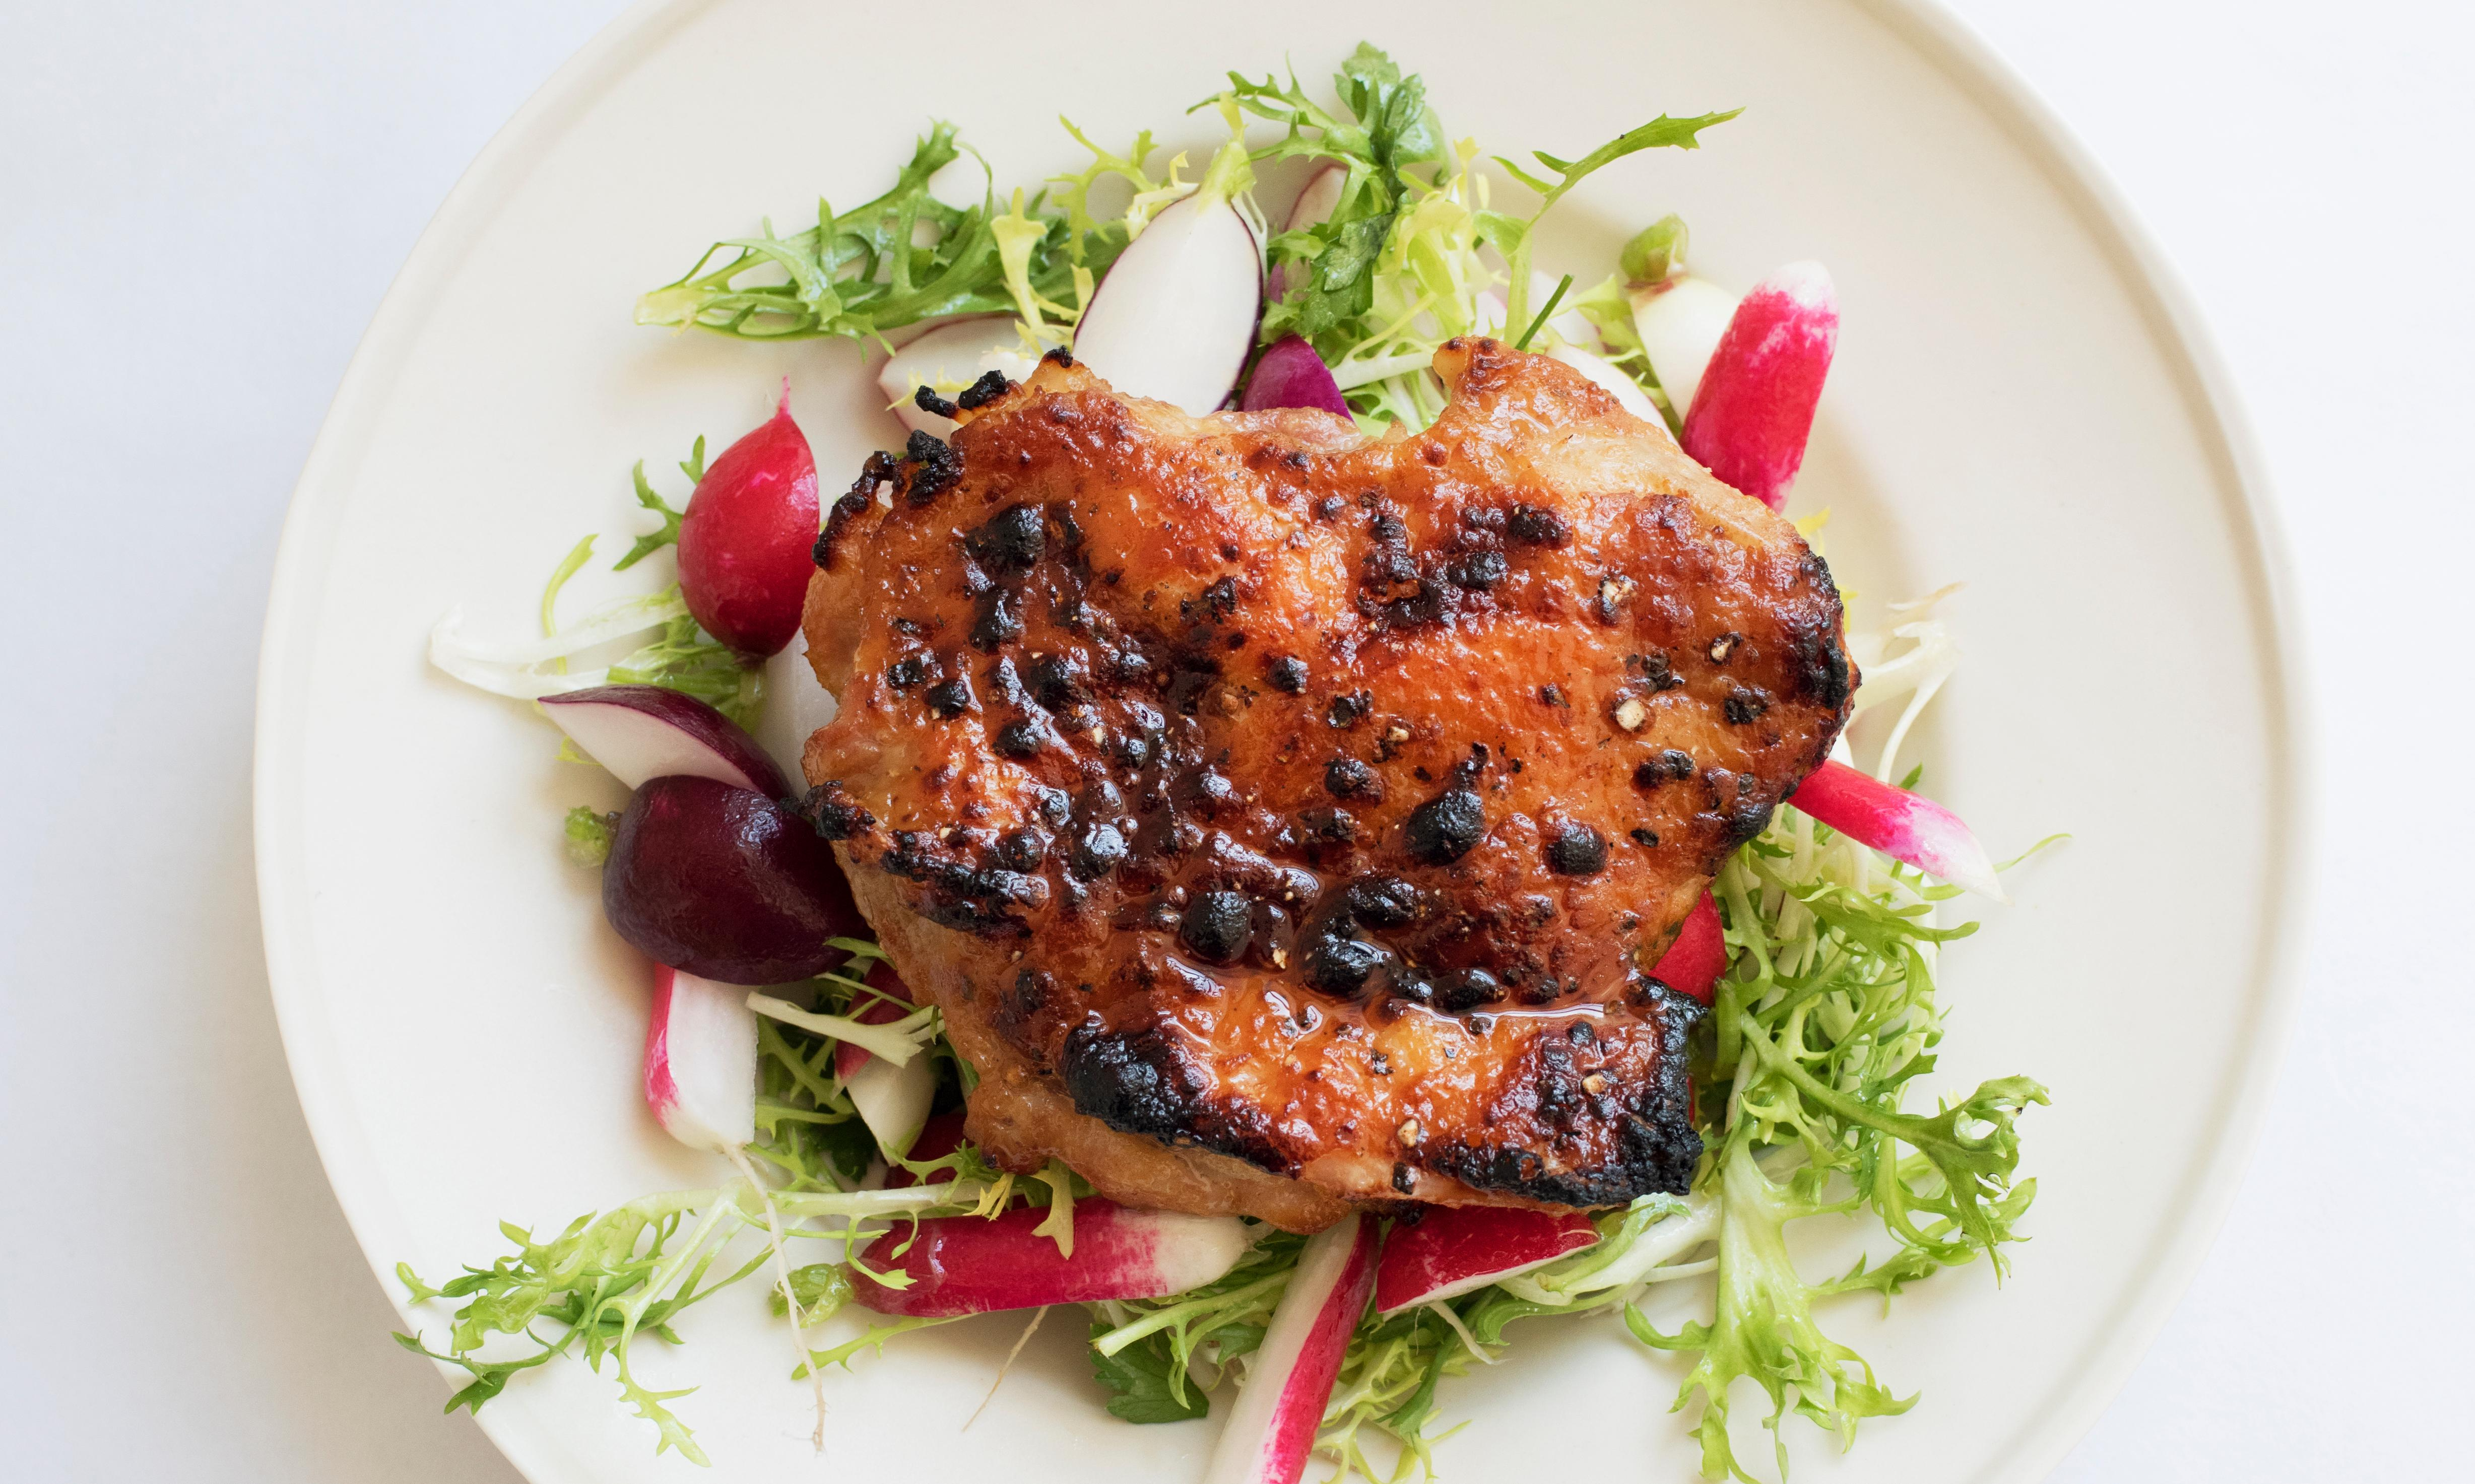 Nigel Slater's grilled chicken with miso recipe